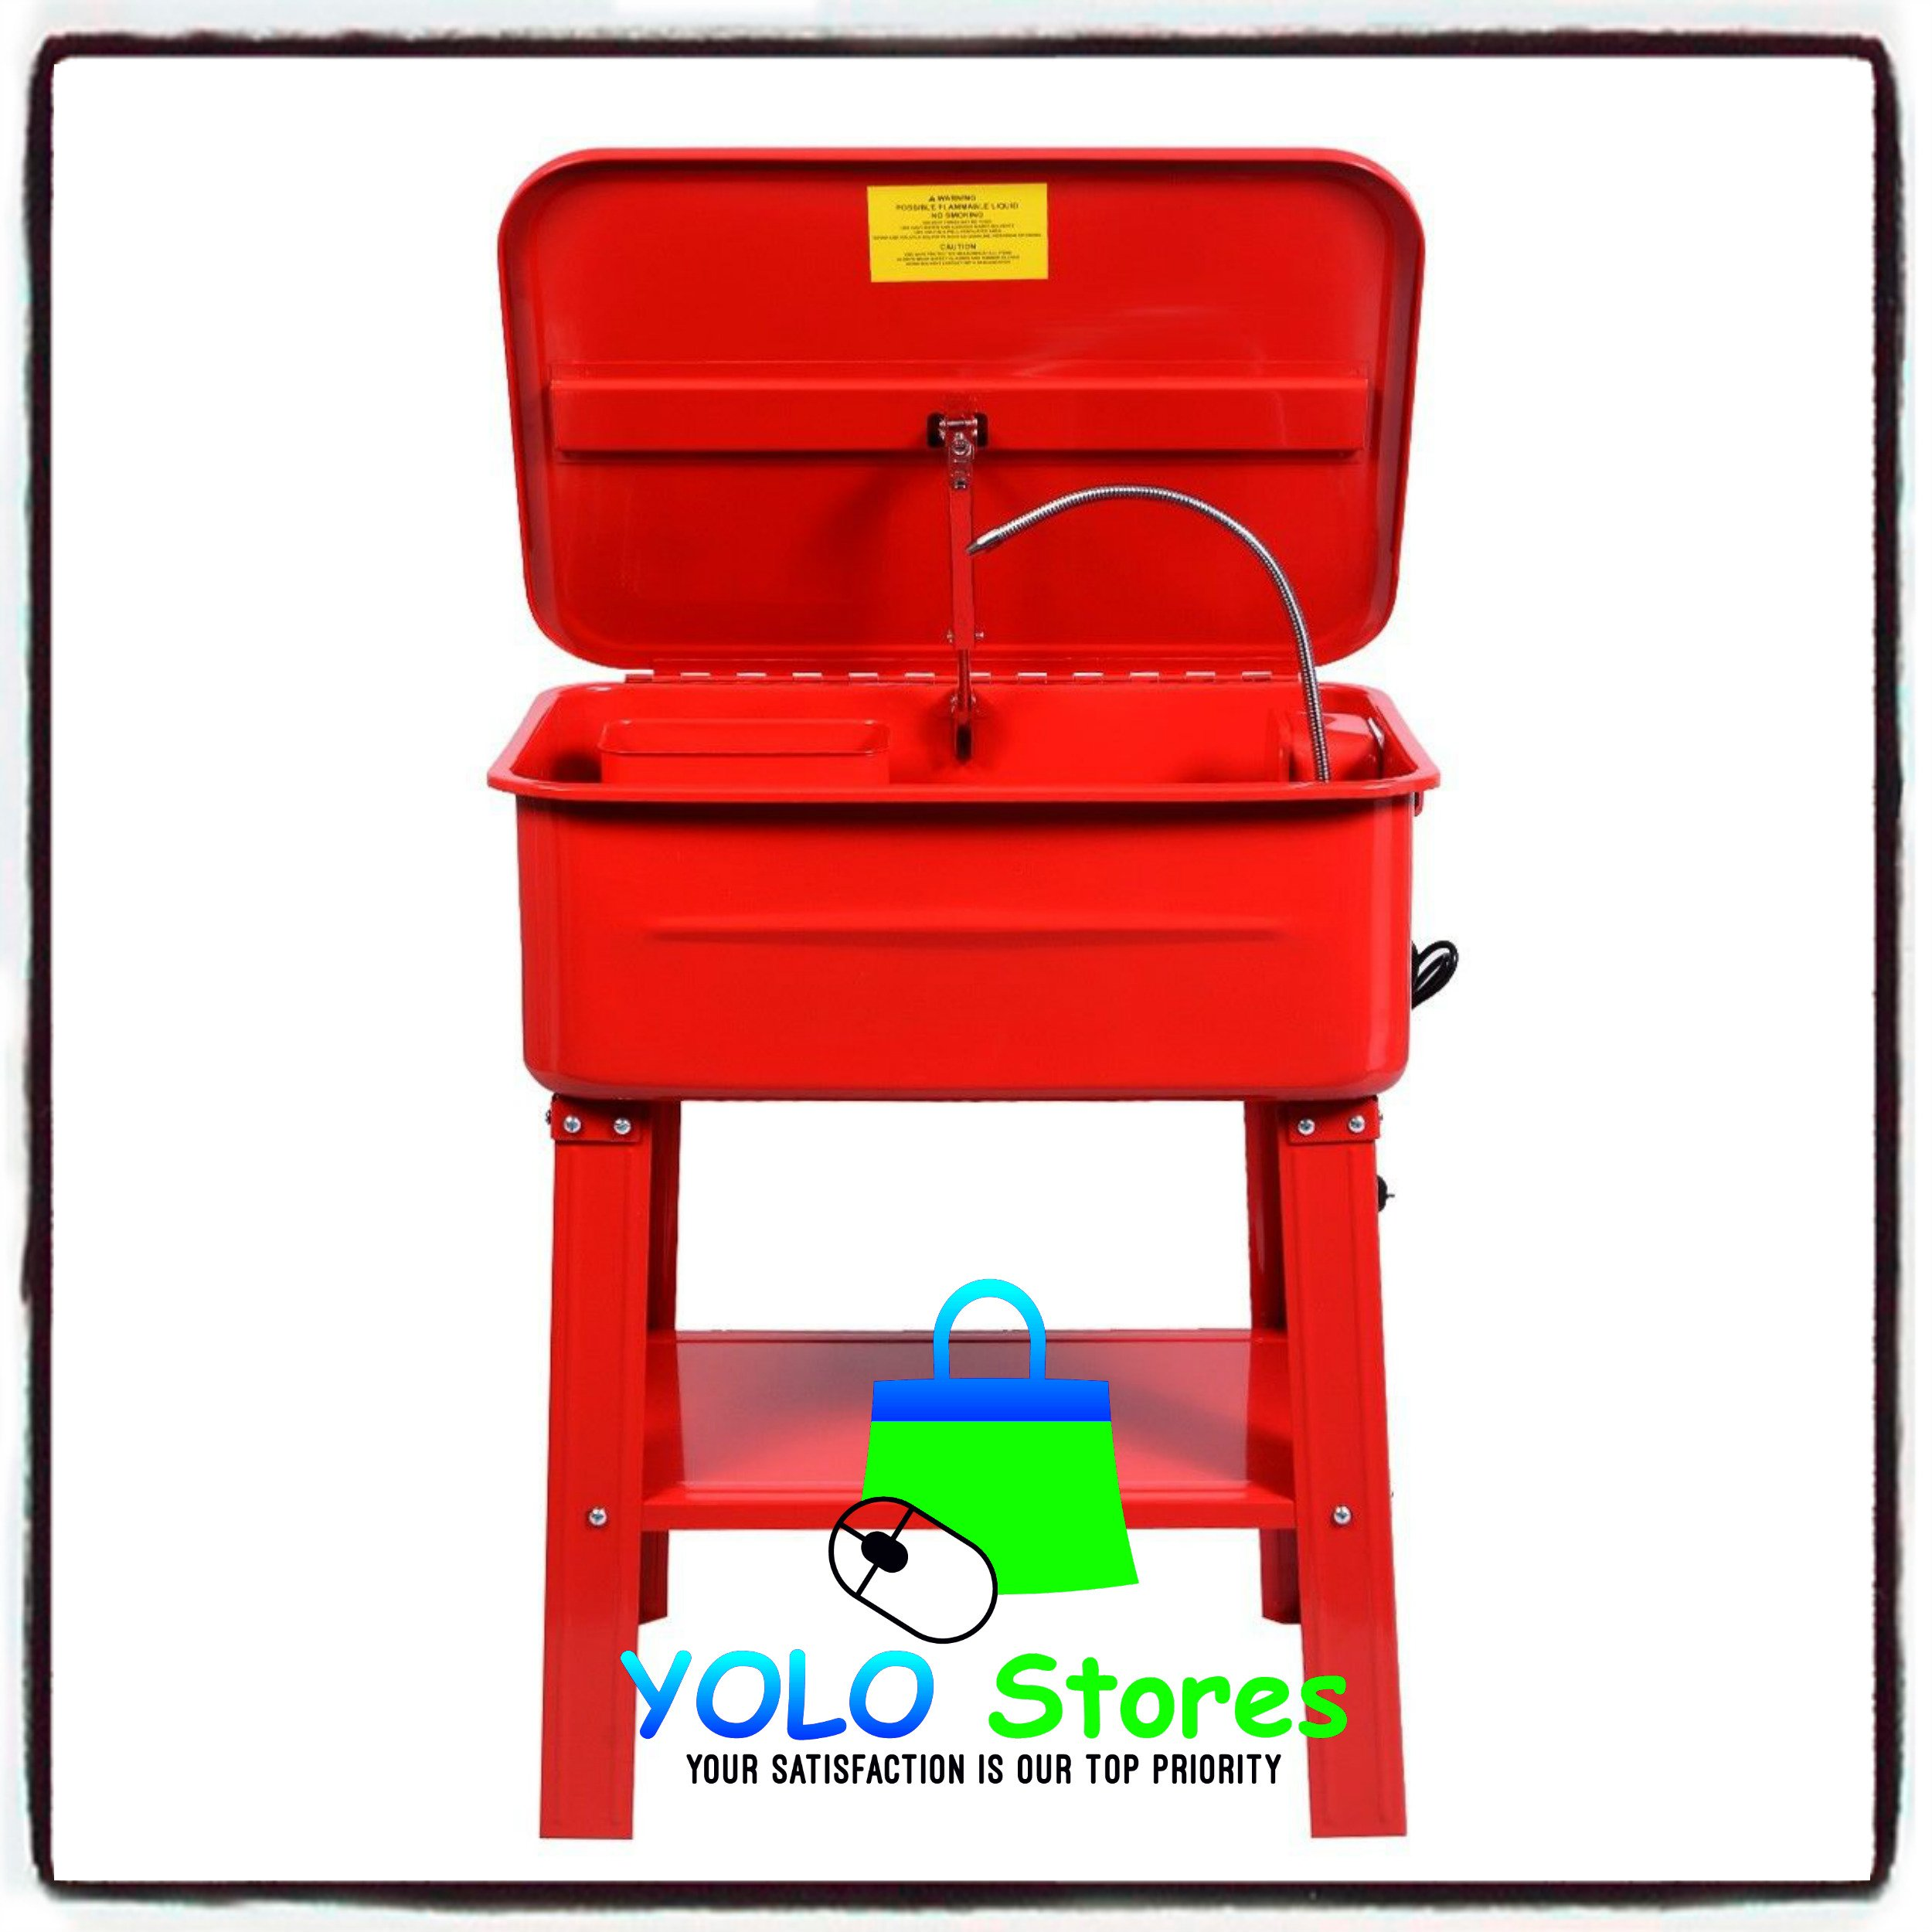 Automotive Parts Washer Cleaner Heavy Duty Electric Solvent Pump 20 Gallon Auto Tools By YOLO Stores by YOLO Stores (Image #3)